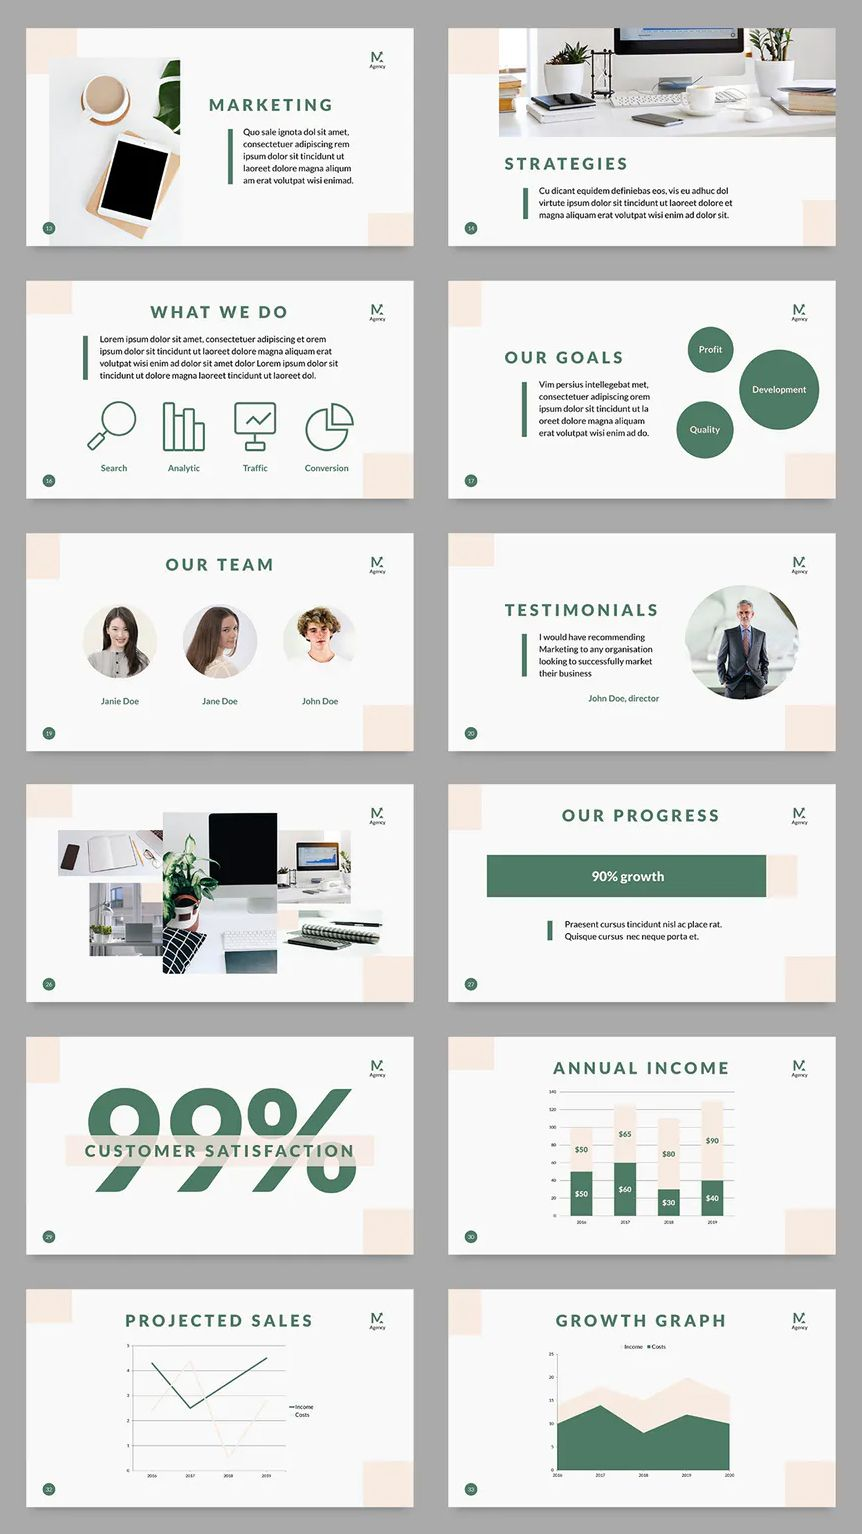 Digital Marketing Company PowerPoint Presentation Template - 50+ Unique Slides